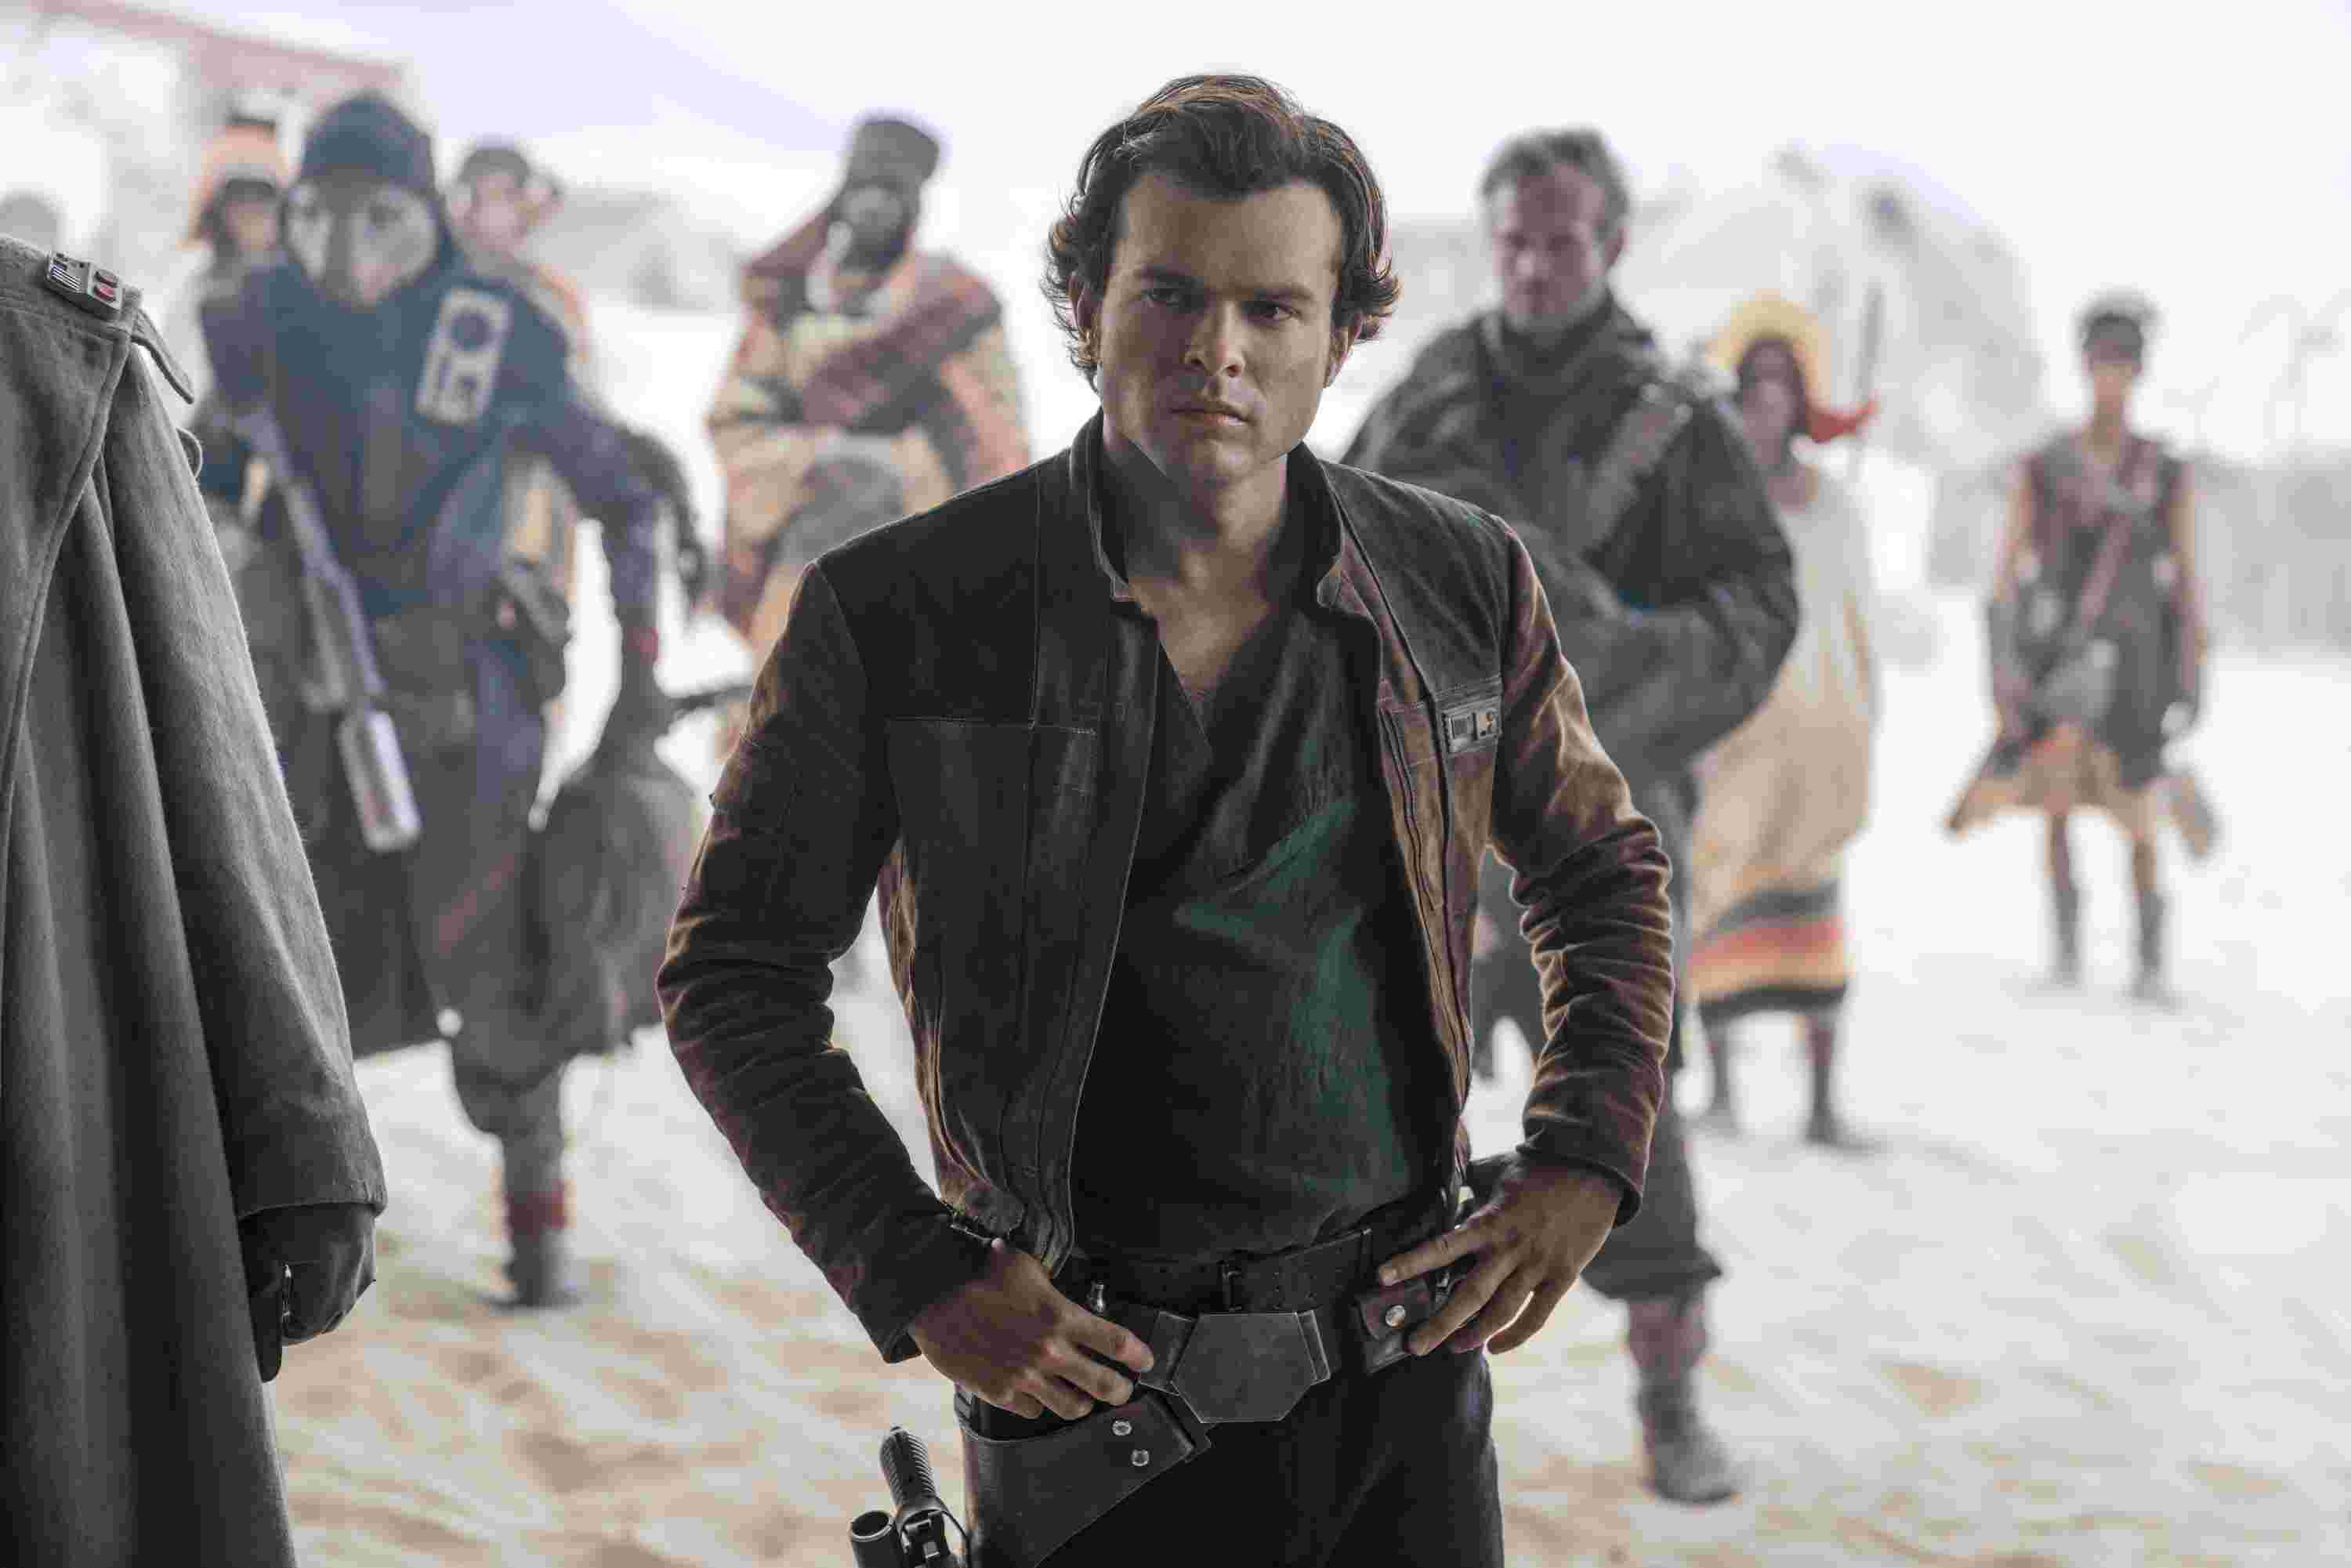 Alden Ehrenreich as the young Han Solo in Solo A Star Wars Story (2018)